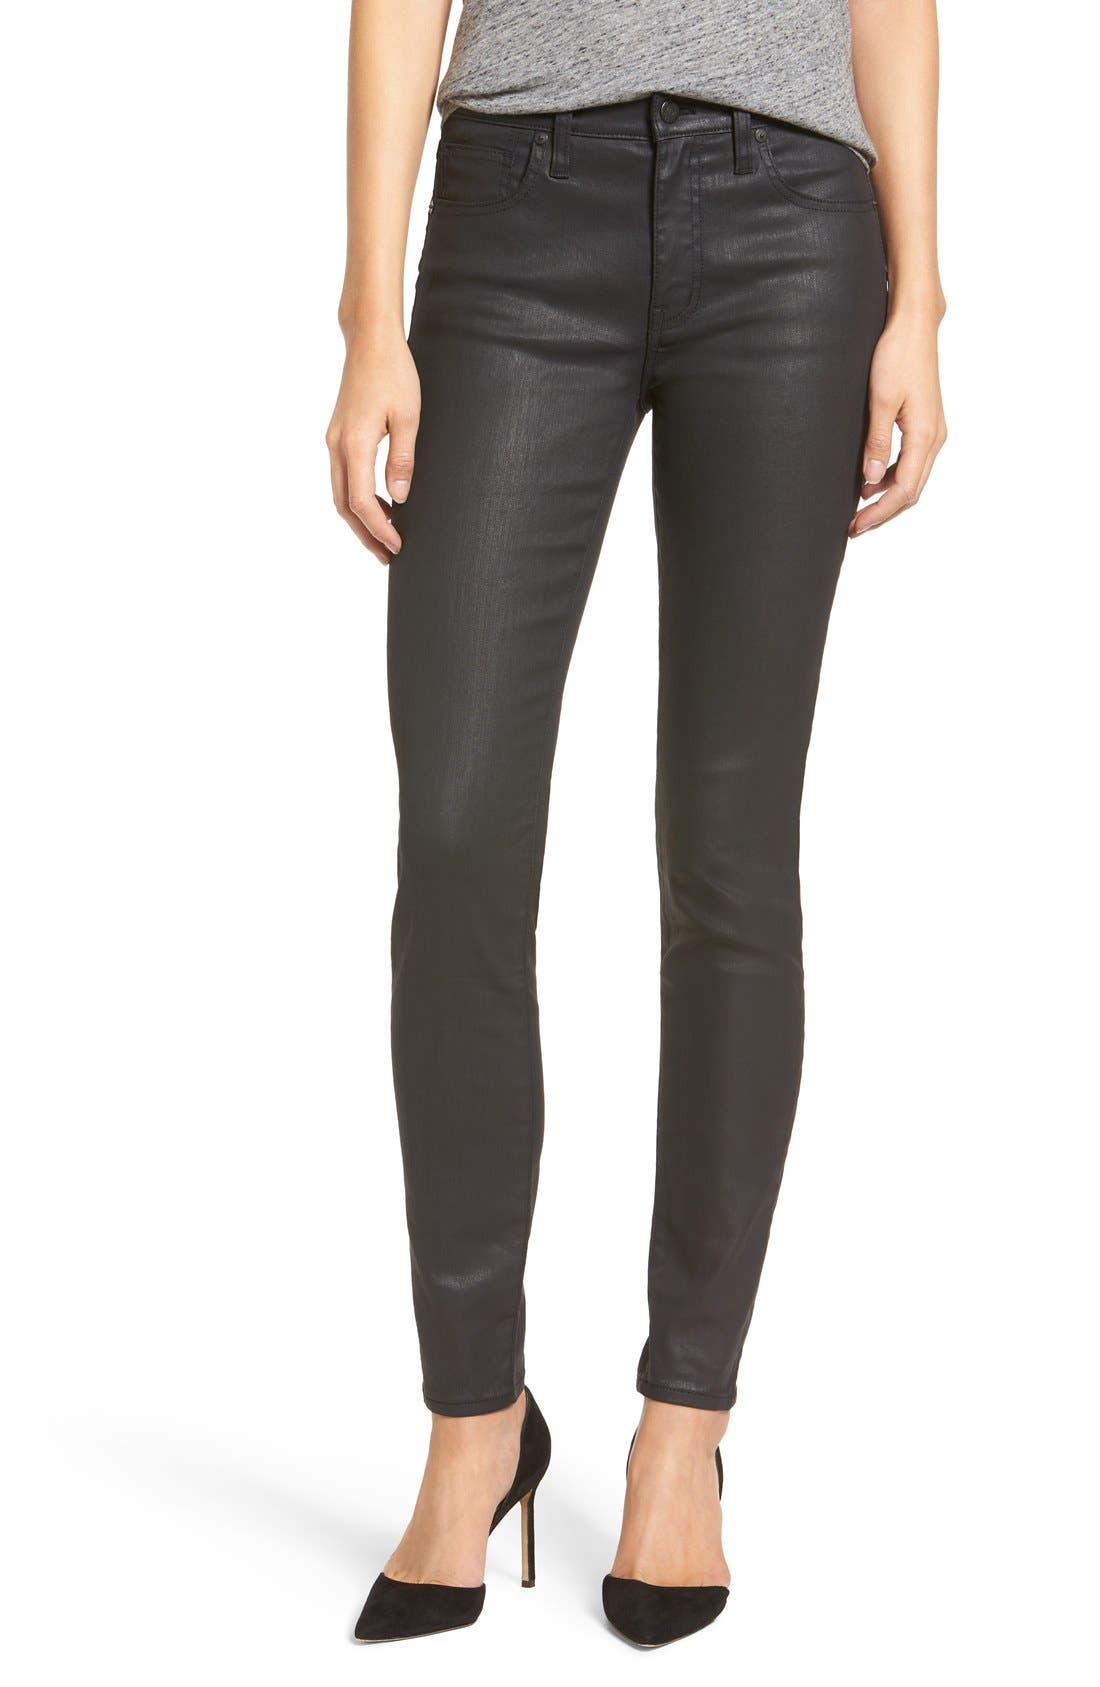 Madewell 'High Riser' Coated Skinny Jeans